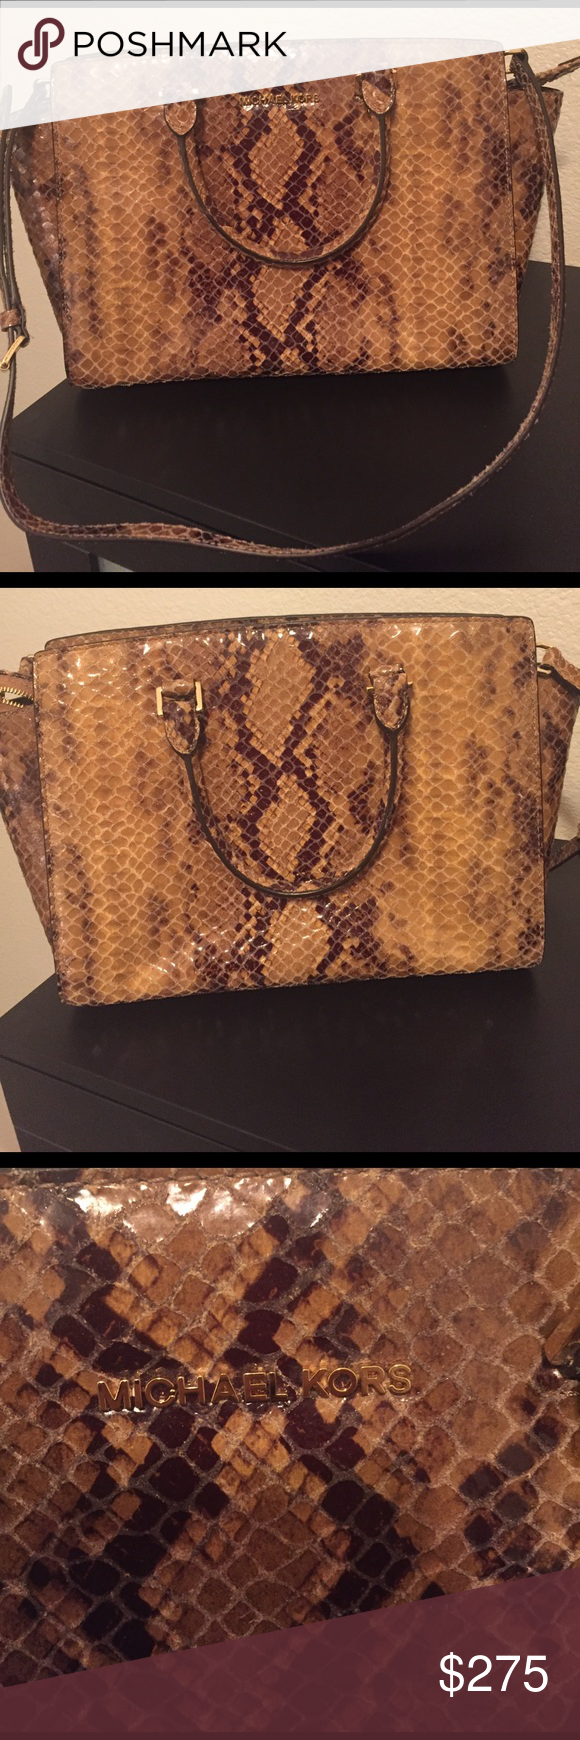 Brand New! Michael Kors Selma Bag! Never Used! Michael Kors medium size Selma satchel bag in snakeskin print! This bag is in excellent condition. No low ball offers please. Michael Kors Bags Satchels